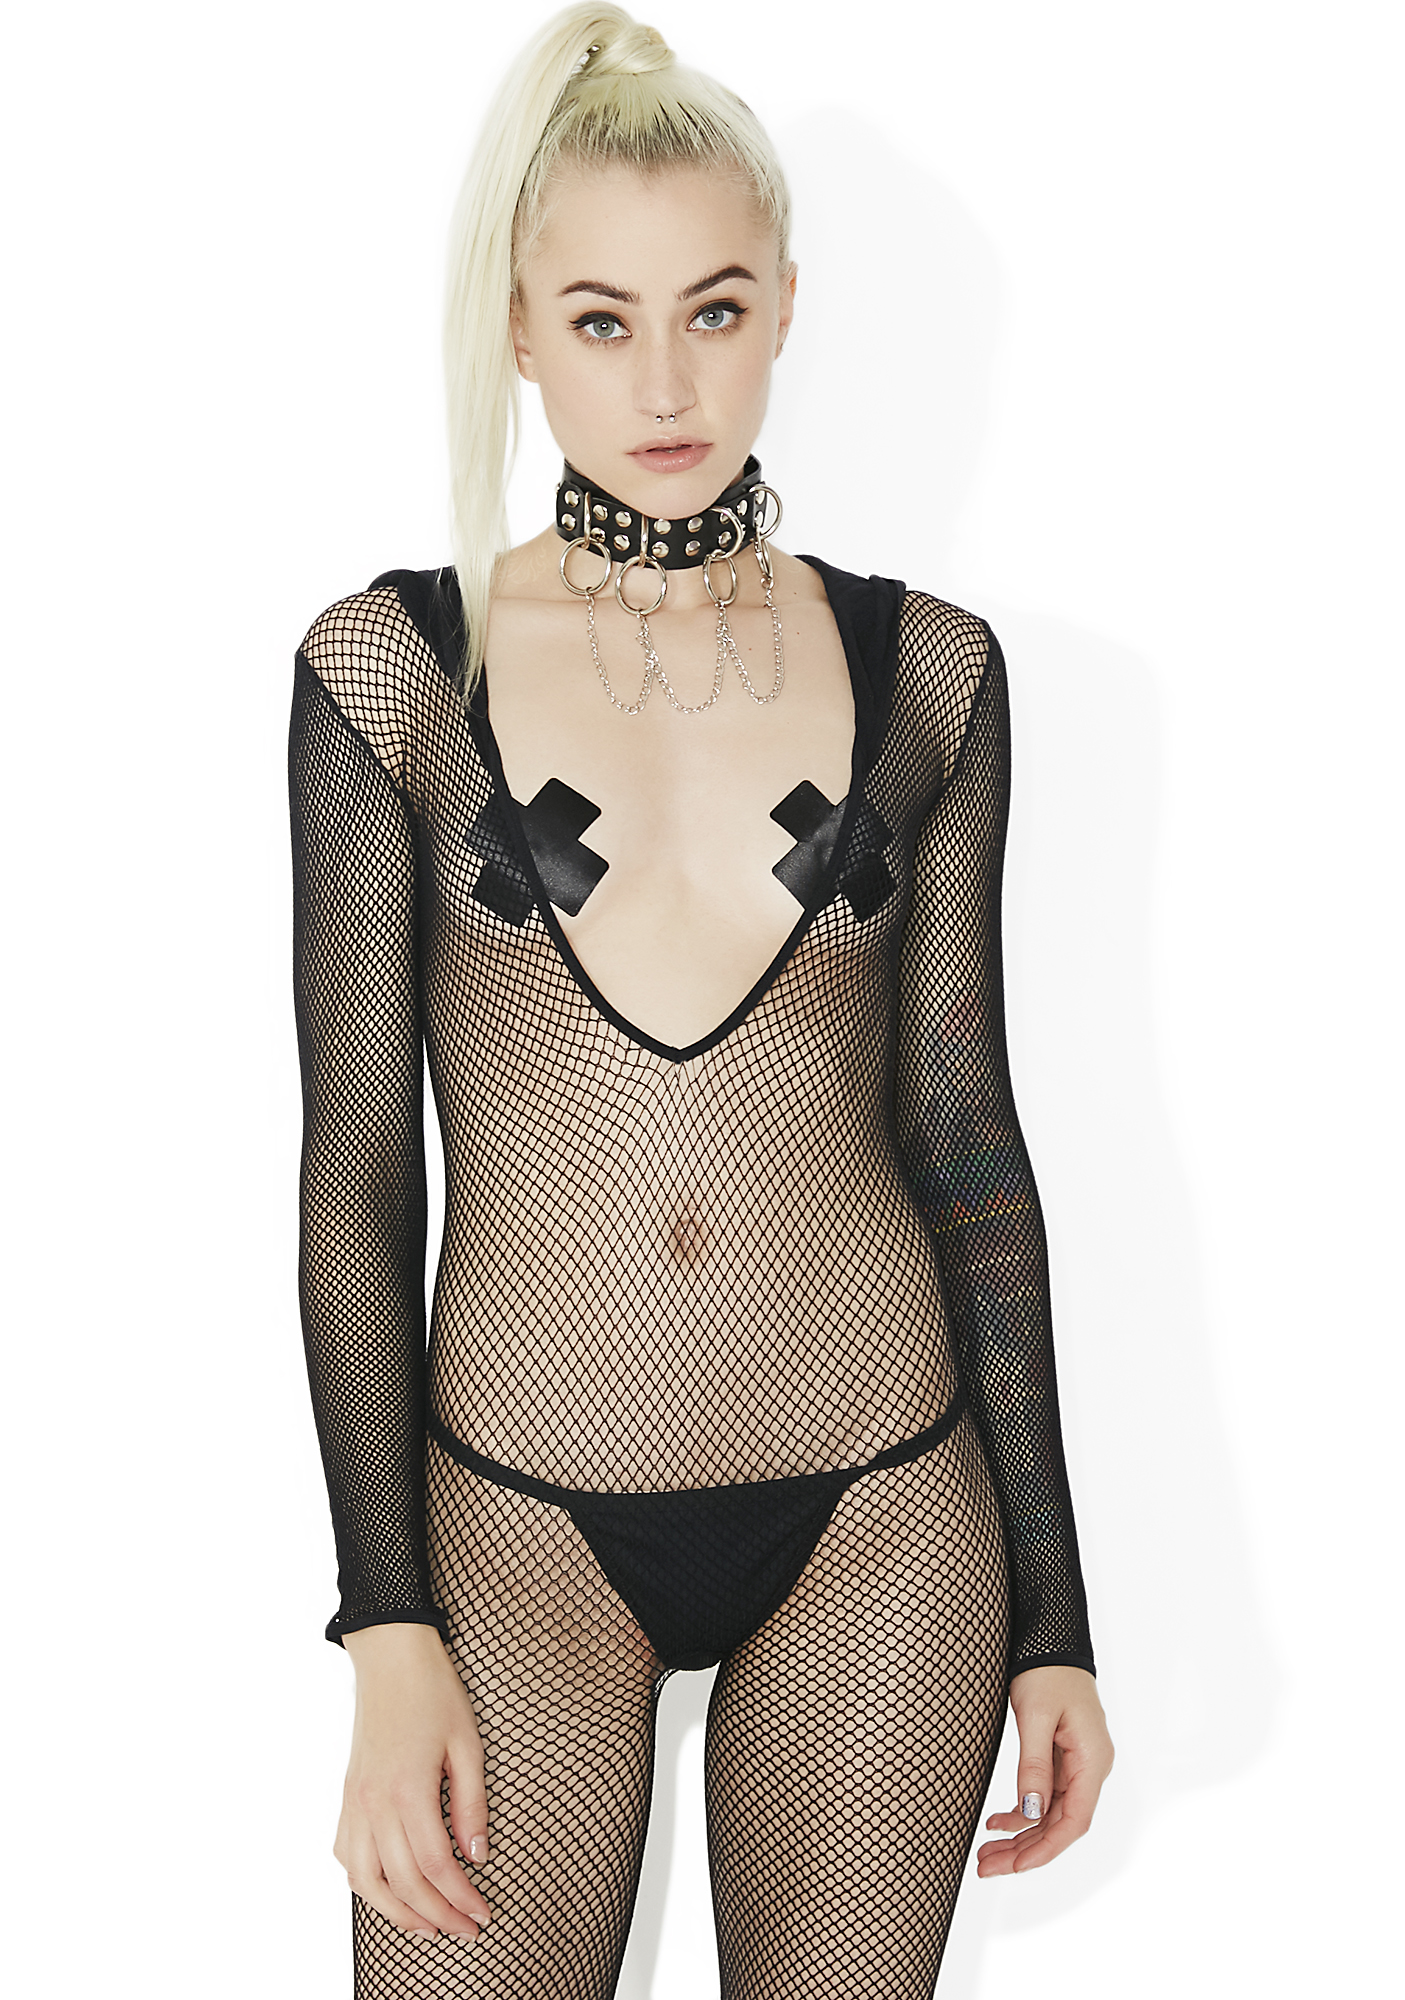 Hooded Footless Sheer Fishnet Bodystocking Black